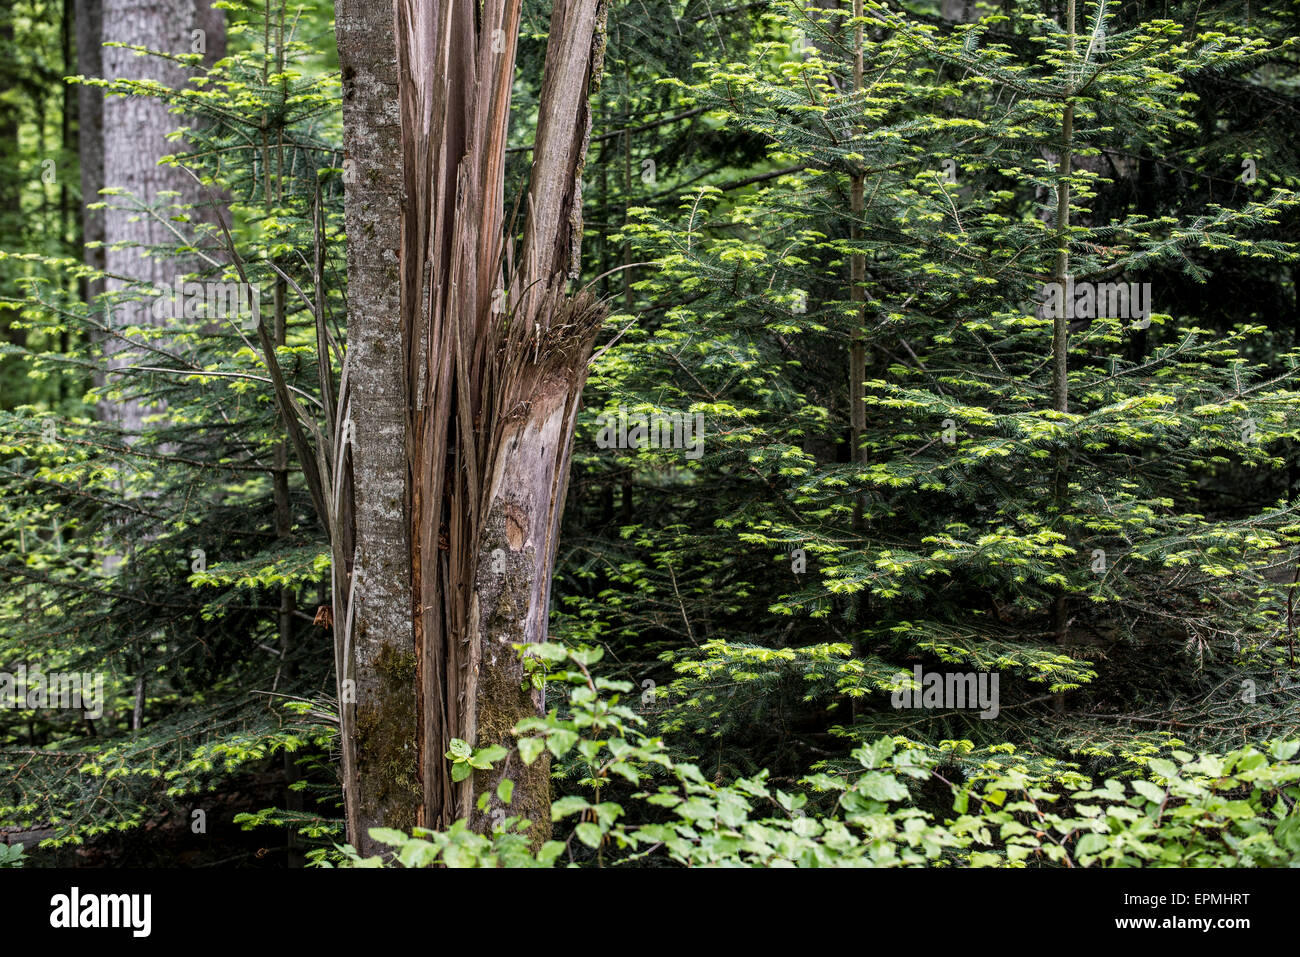 Storm damage in forest showing broken tree trunk, snapped by hurricane winds and coniferous saplings - Stock Image